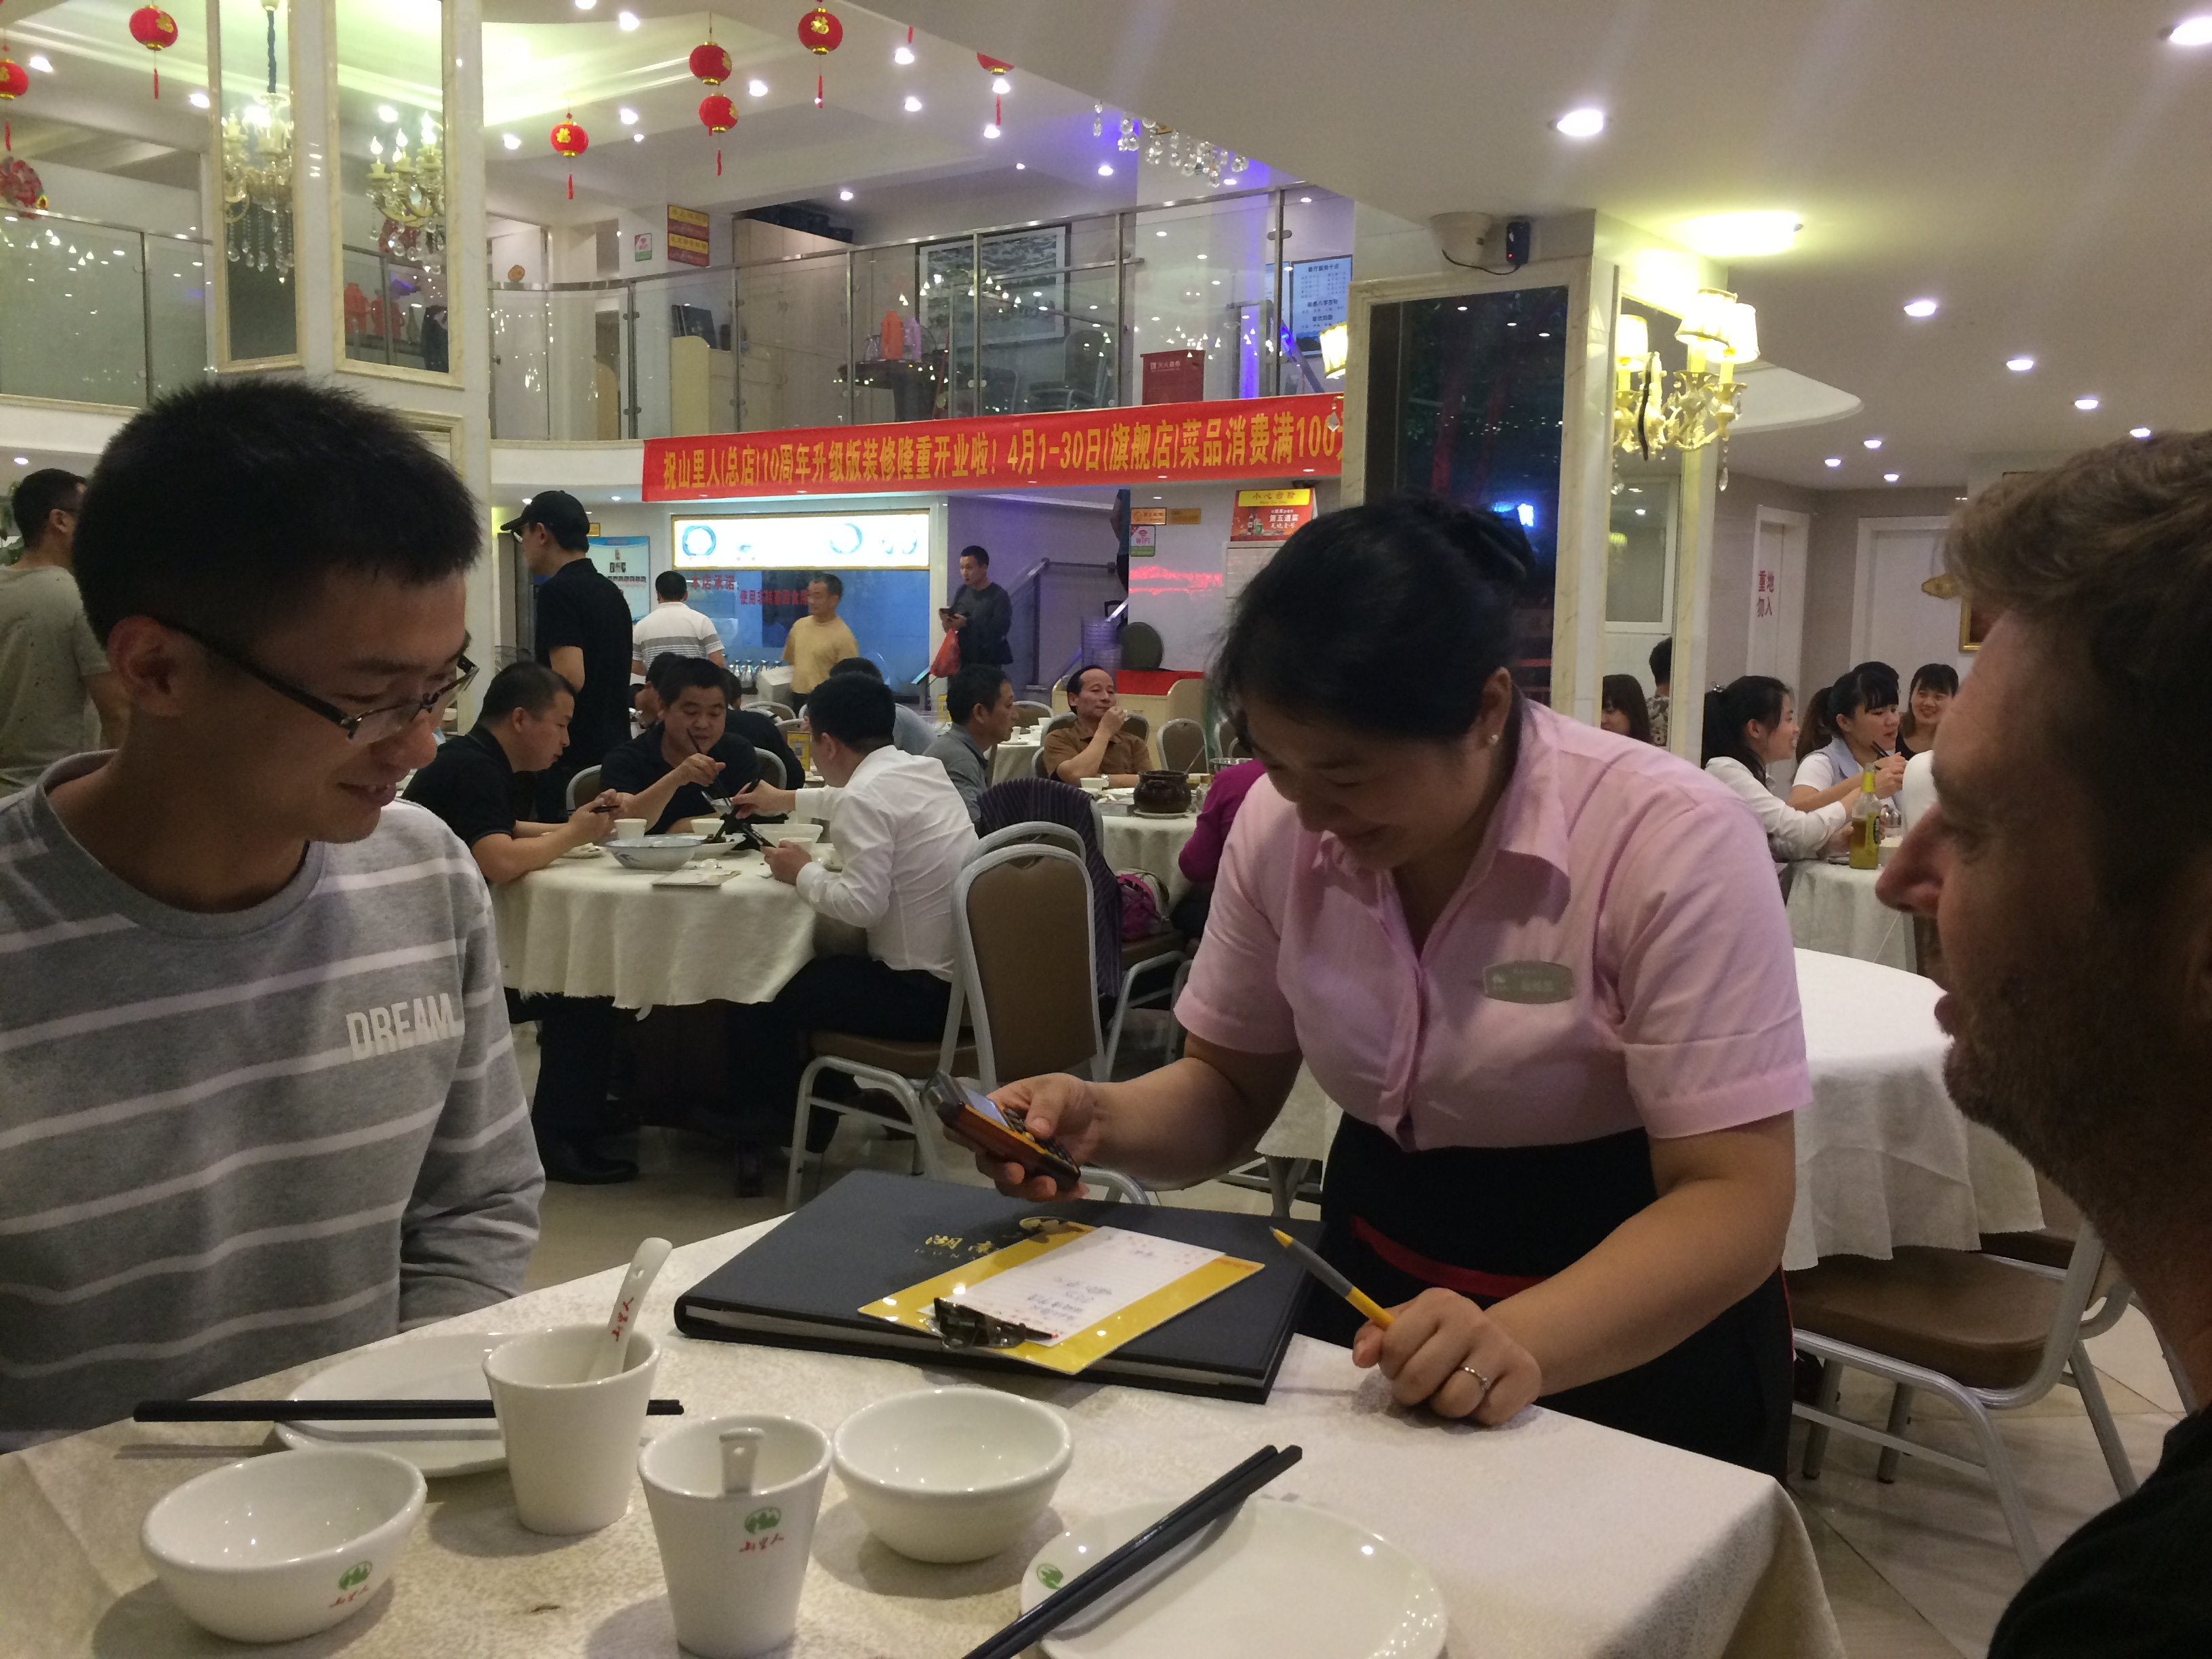 Restaurant in Shenzhen China We are ordering food there.